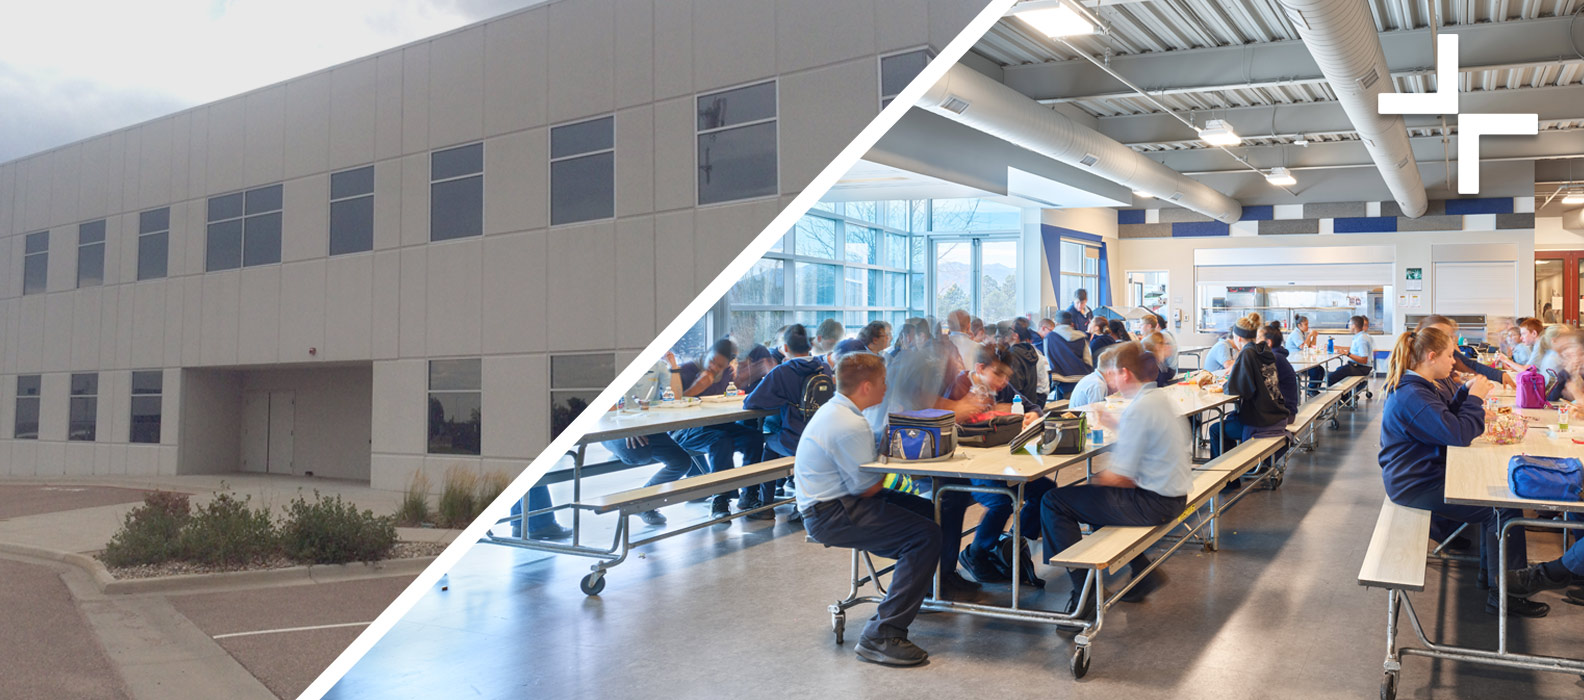 Make the best site choice for your charter school